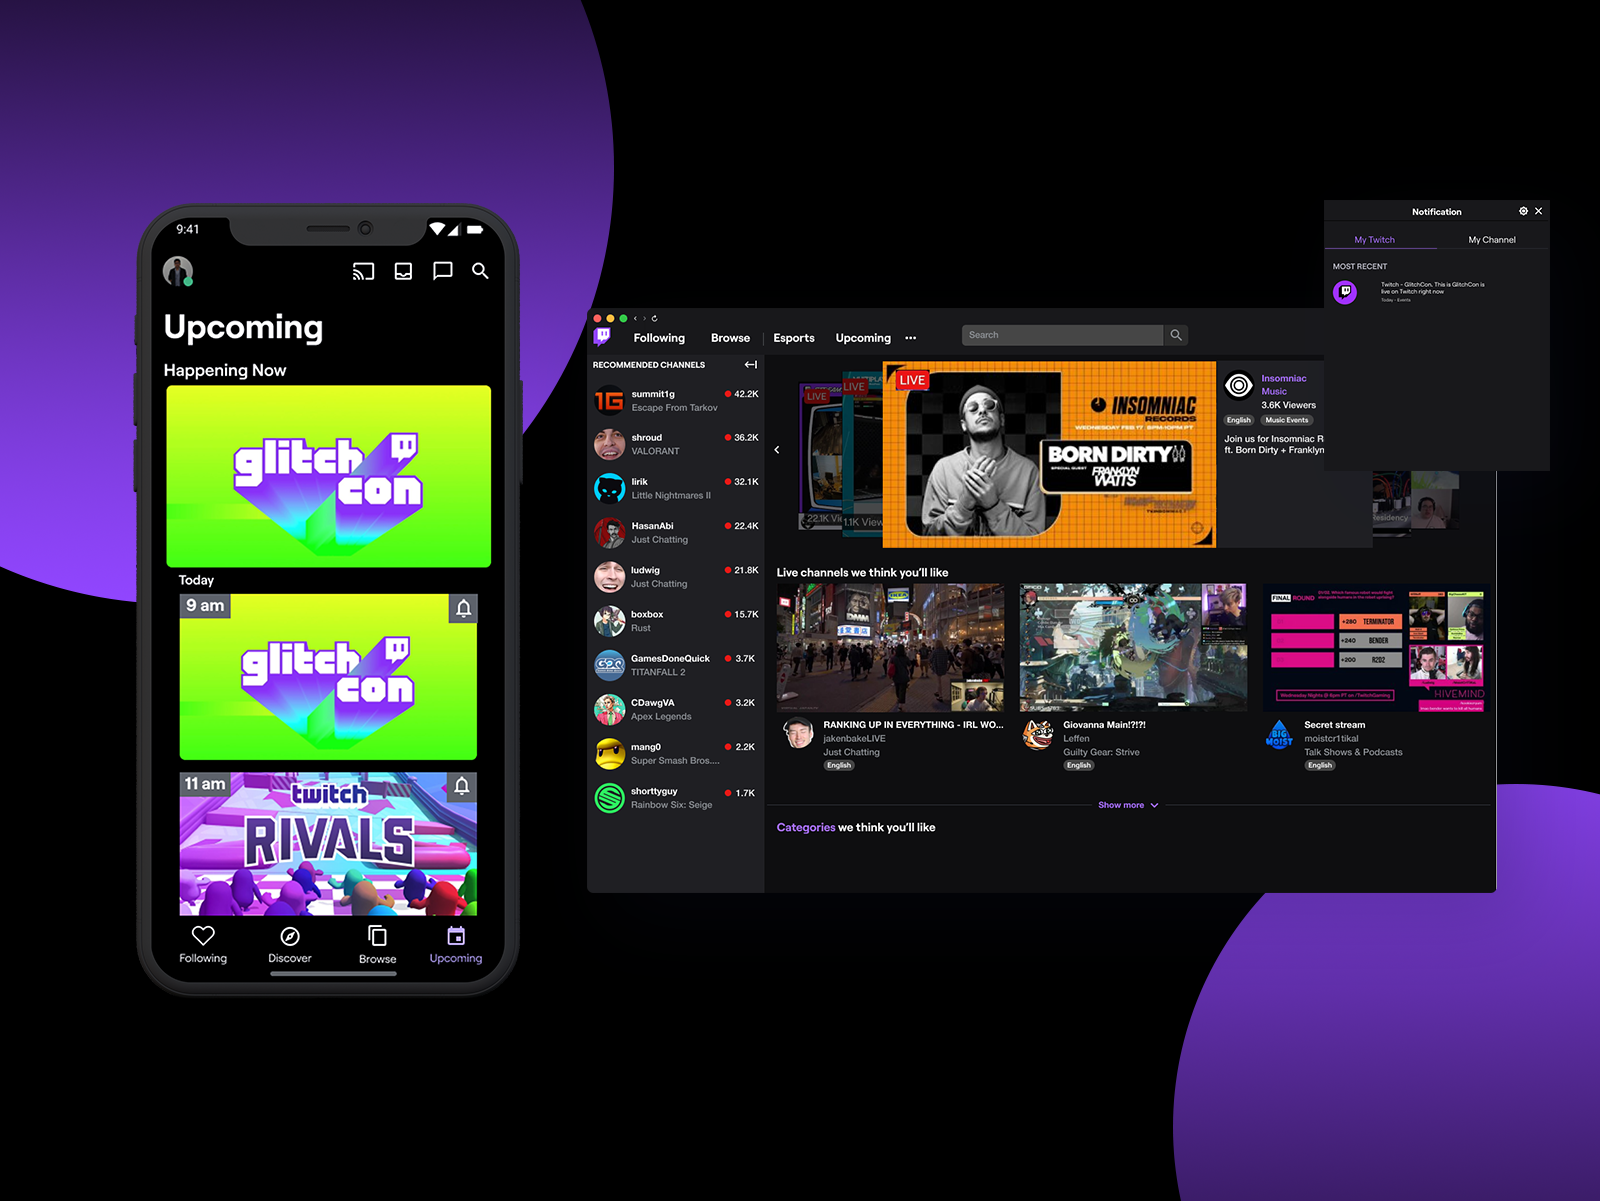 Hero Image to visit the Twitch Events case study.